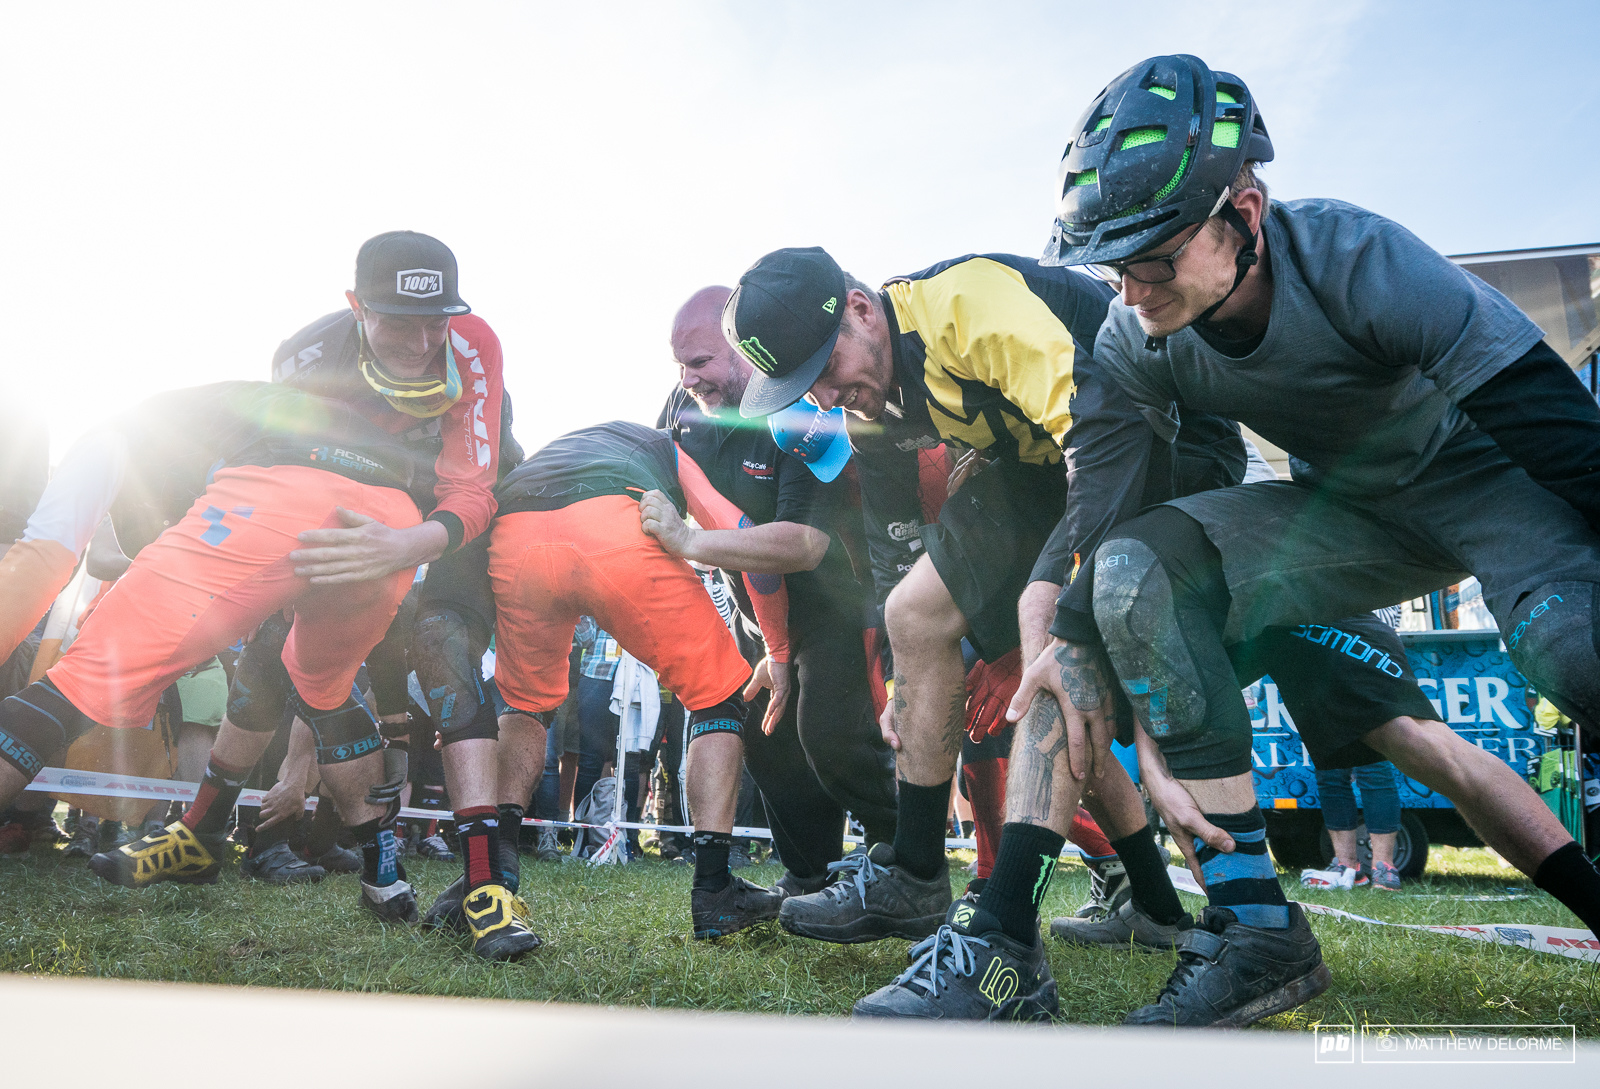 The last event. The square circle of doom ankle fighting thing. Sam Hill and Duncan Philpott battle it out whilst two men in the back ground clearly break the rules. If there really are rules.